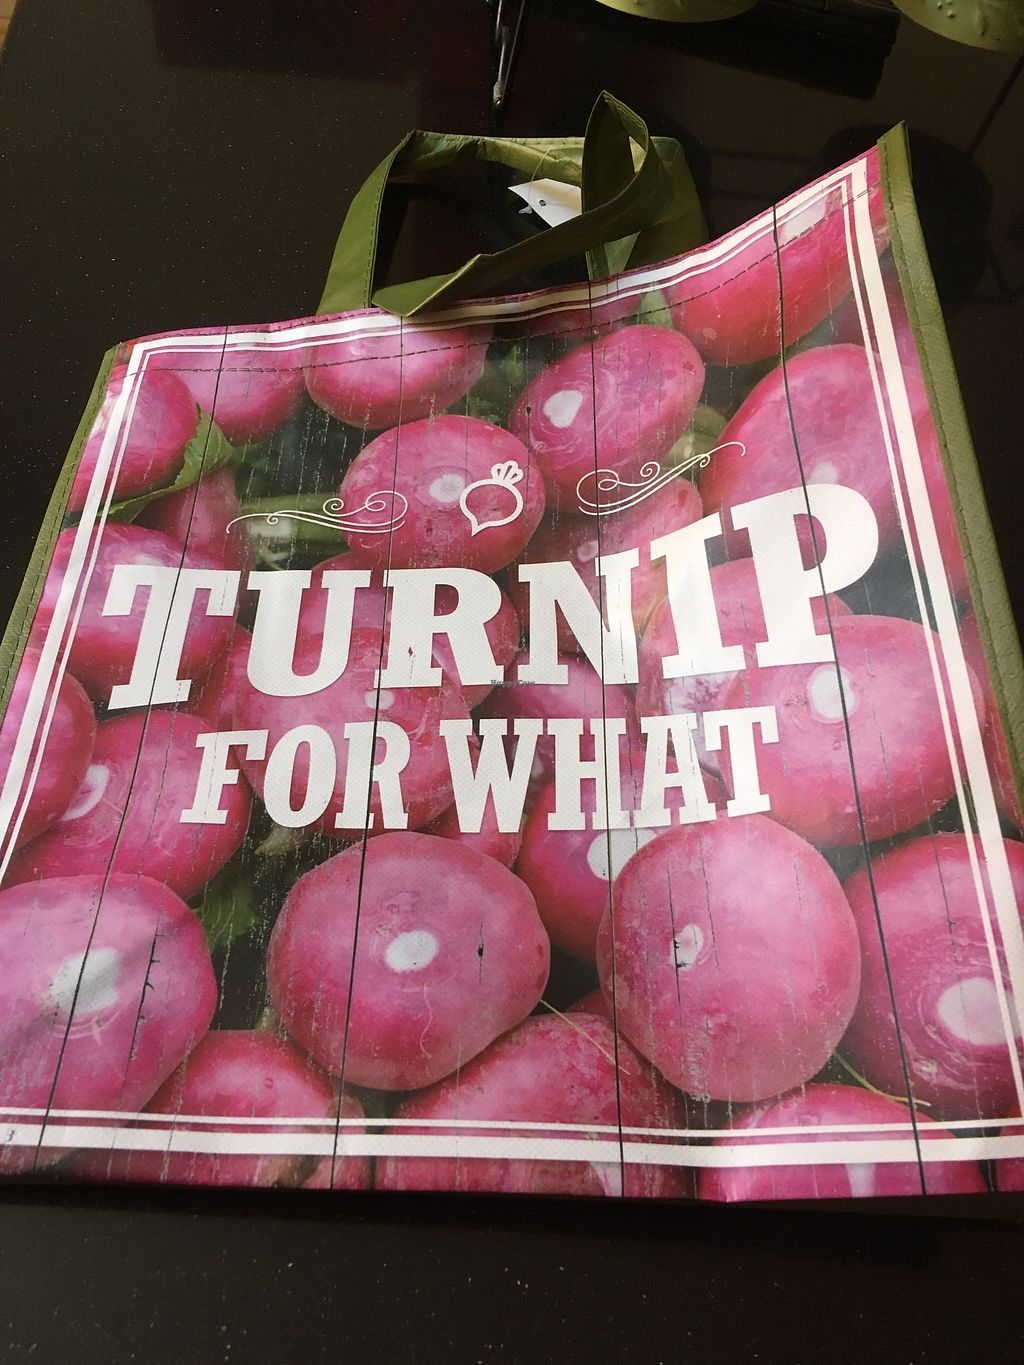 """Photo of Sprouts Farmers Market - San Mateo  by <a href=""""/members/profile/AlexandraPhillips"""">AlexandraPhillips</a> <br/>LOVE my reusable bag! haha <br/> August 2, 2017  - <a href='/contact/abuse/image/27412/288035'>Report</a>"""